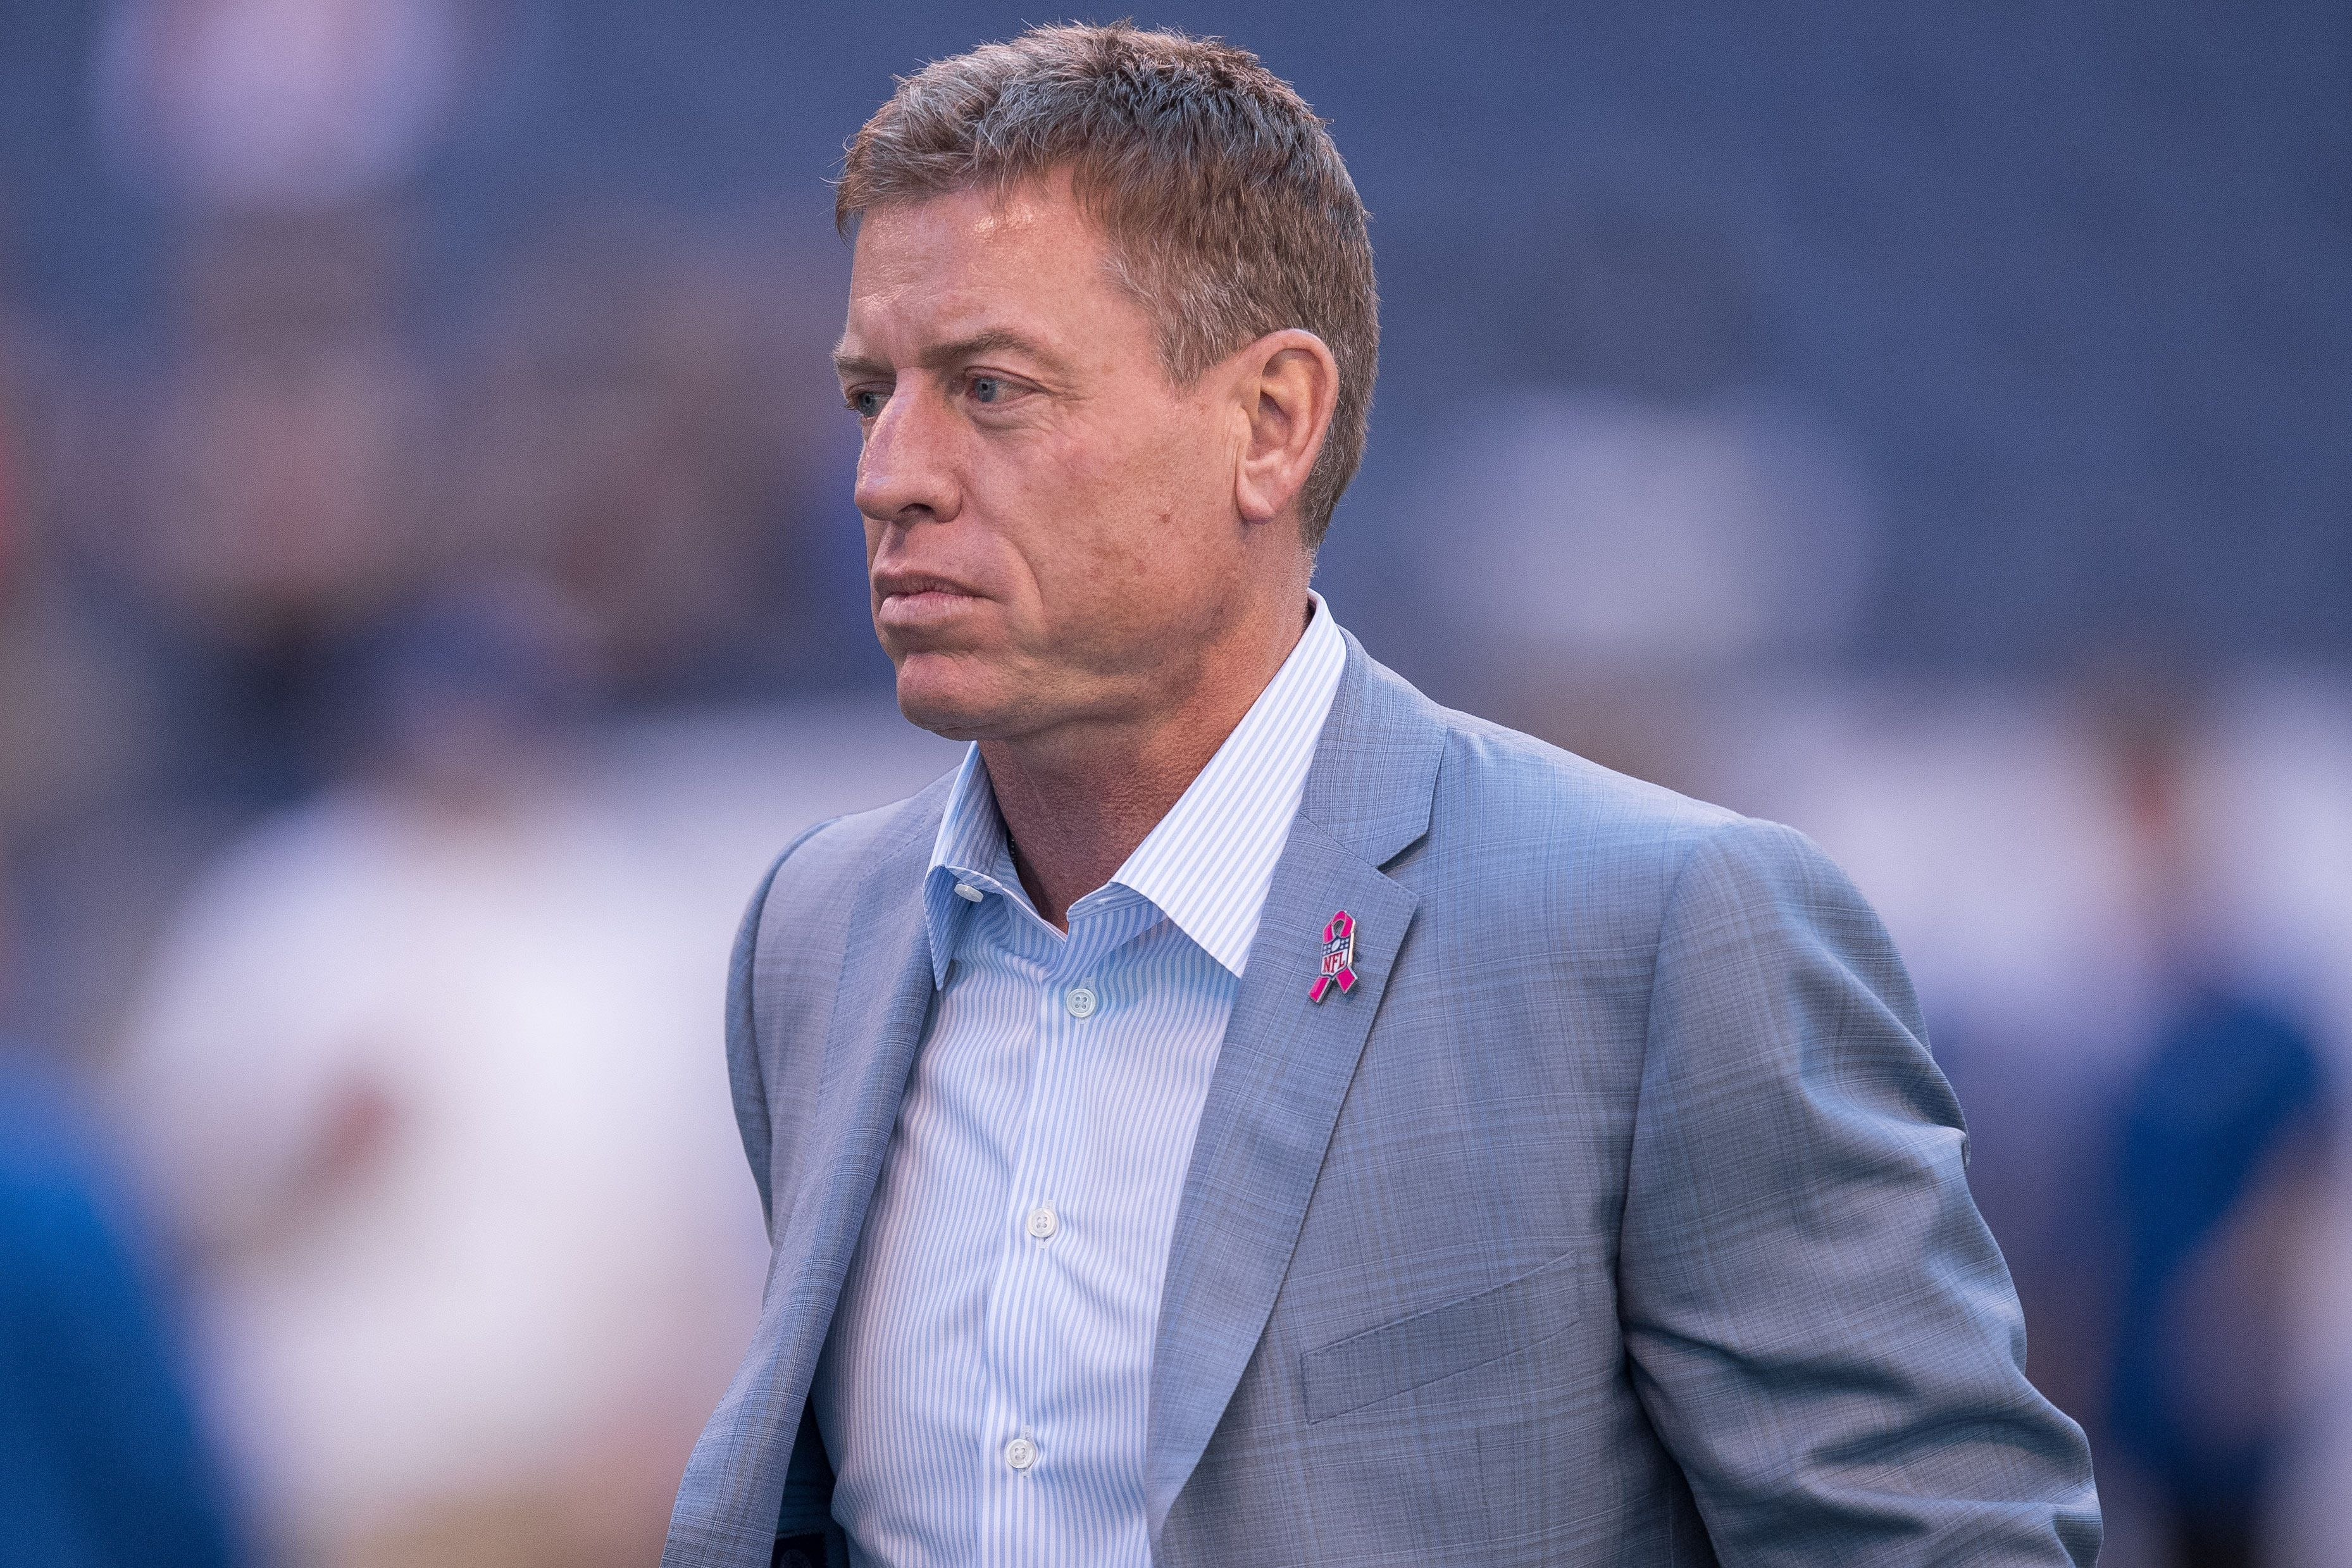 October 9, 2016: FOX Sports broadcaster Troy Aikman on the field before the NFL game between the Chicago Bears and Indianapolis Colts at Lucas Oil Stadium in Indianapolis, IN.  (Photo by Zach Bolinger/Icon Sportswire via Getty Images)